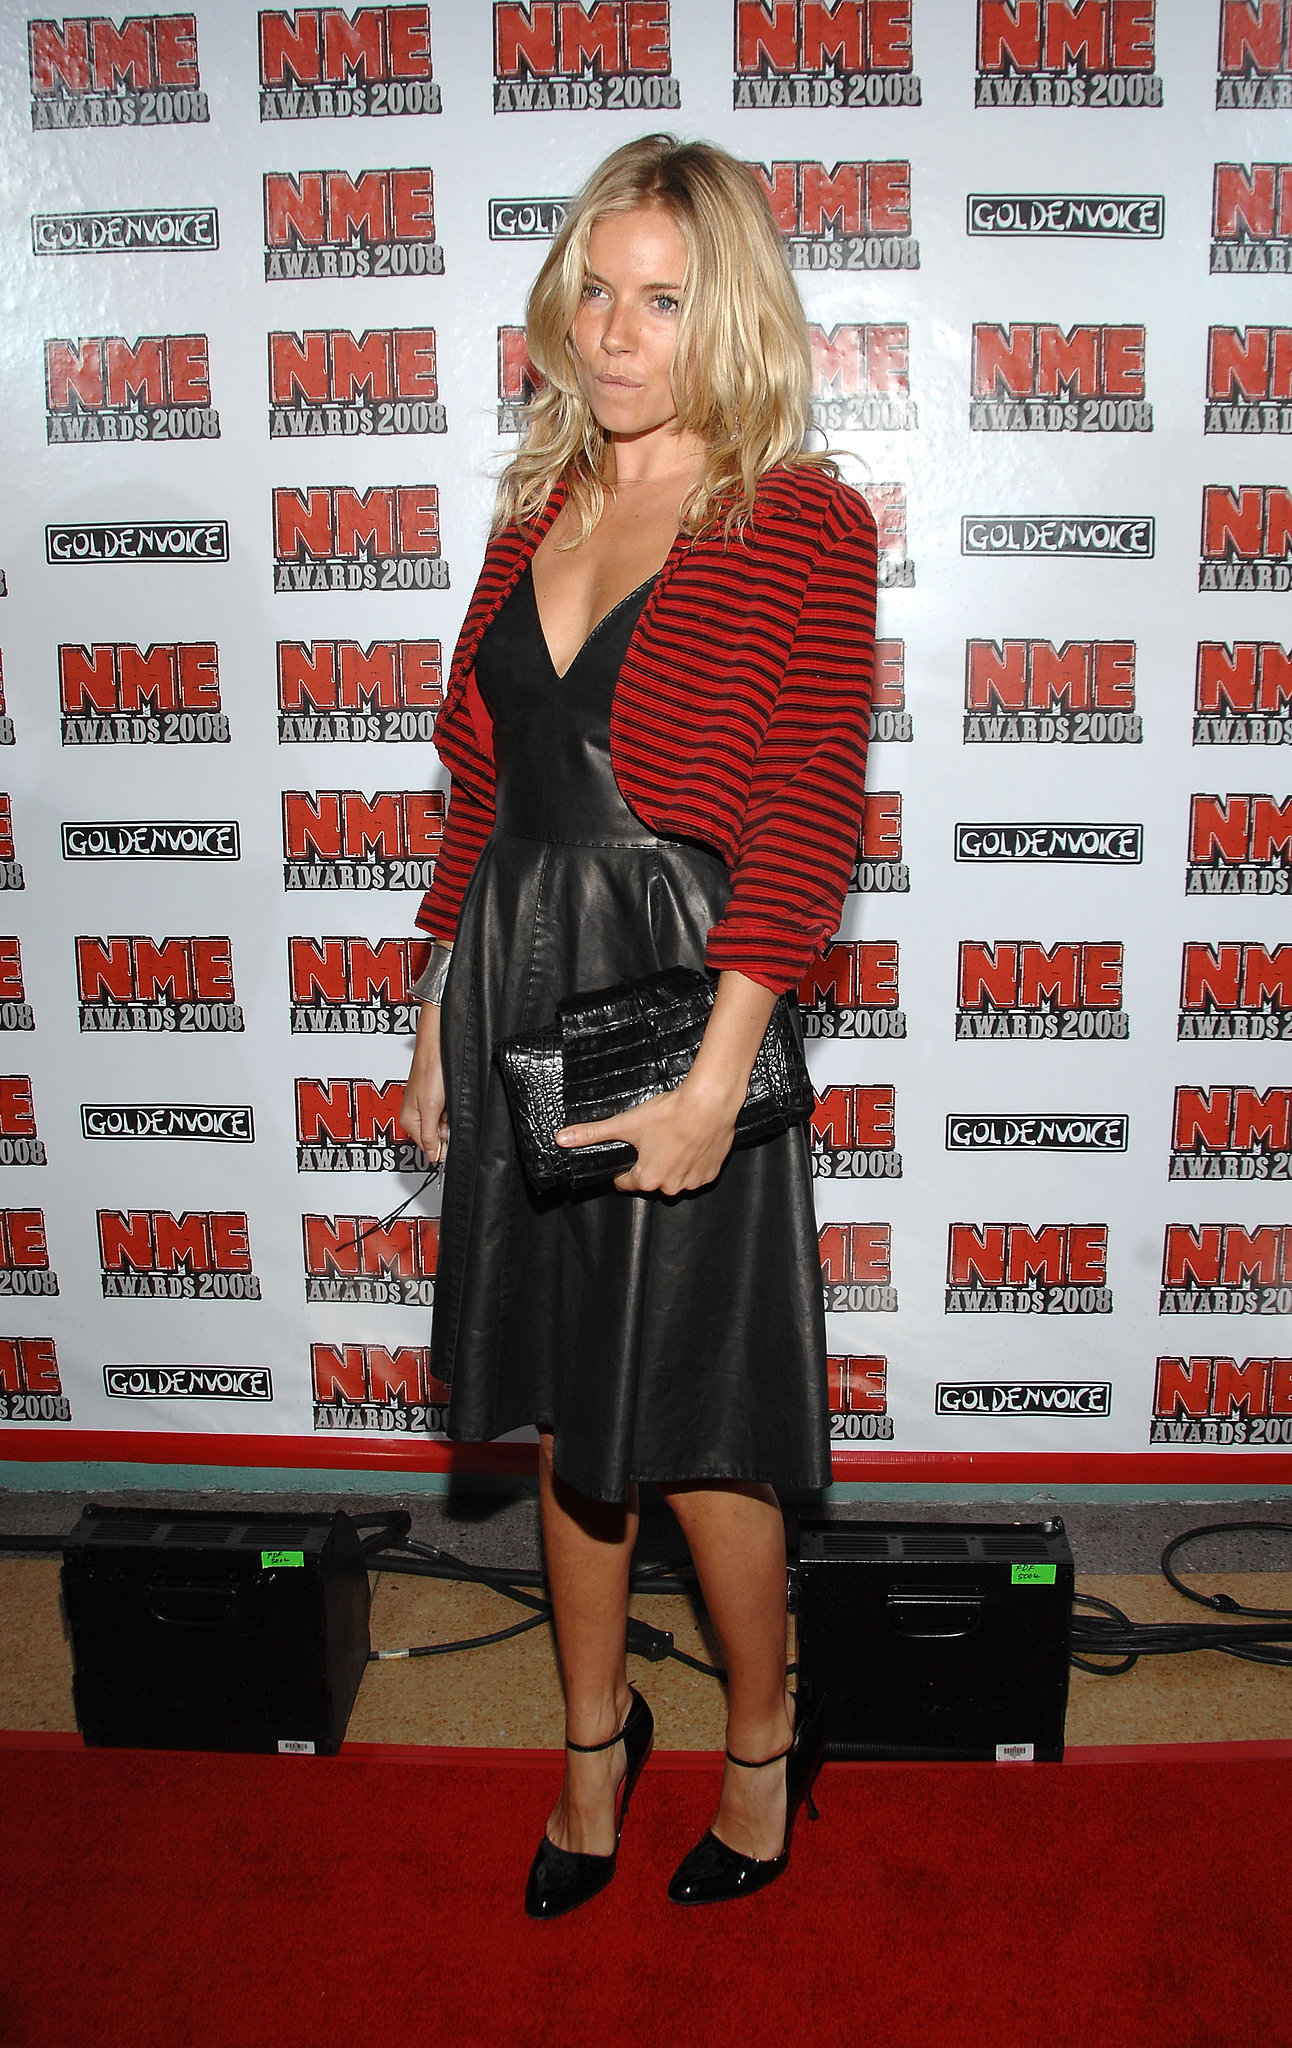 Sienna went for black leather and stripes for a red carpet event in 2008.